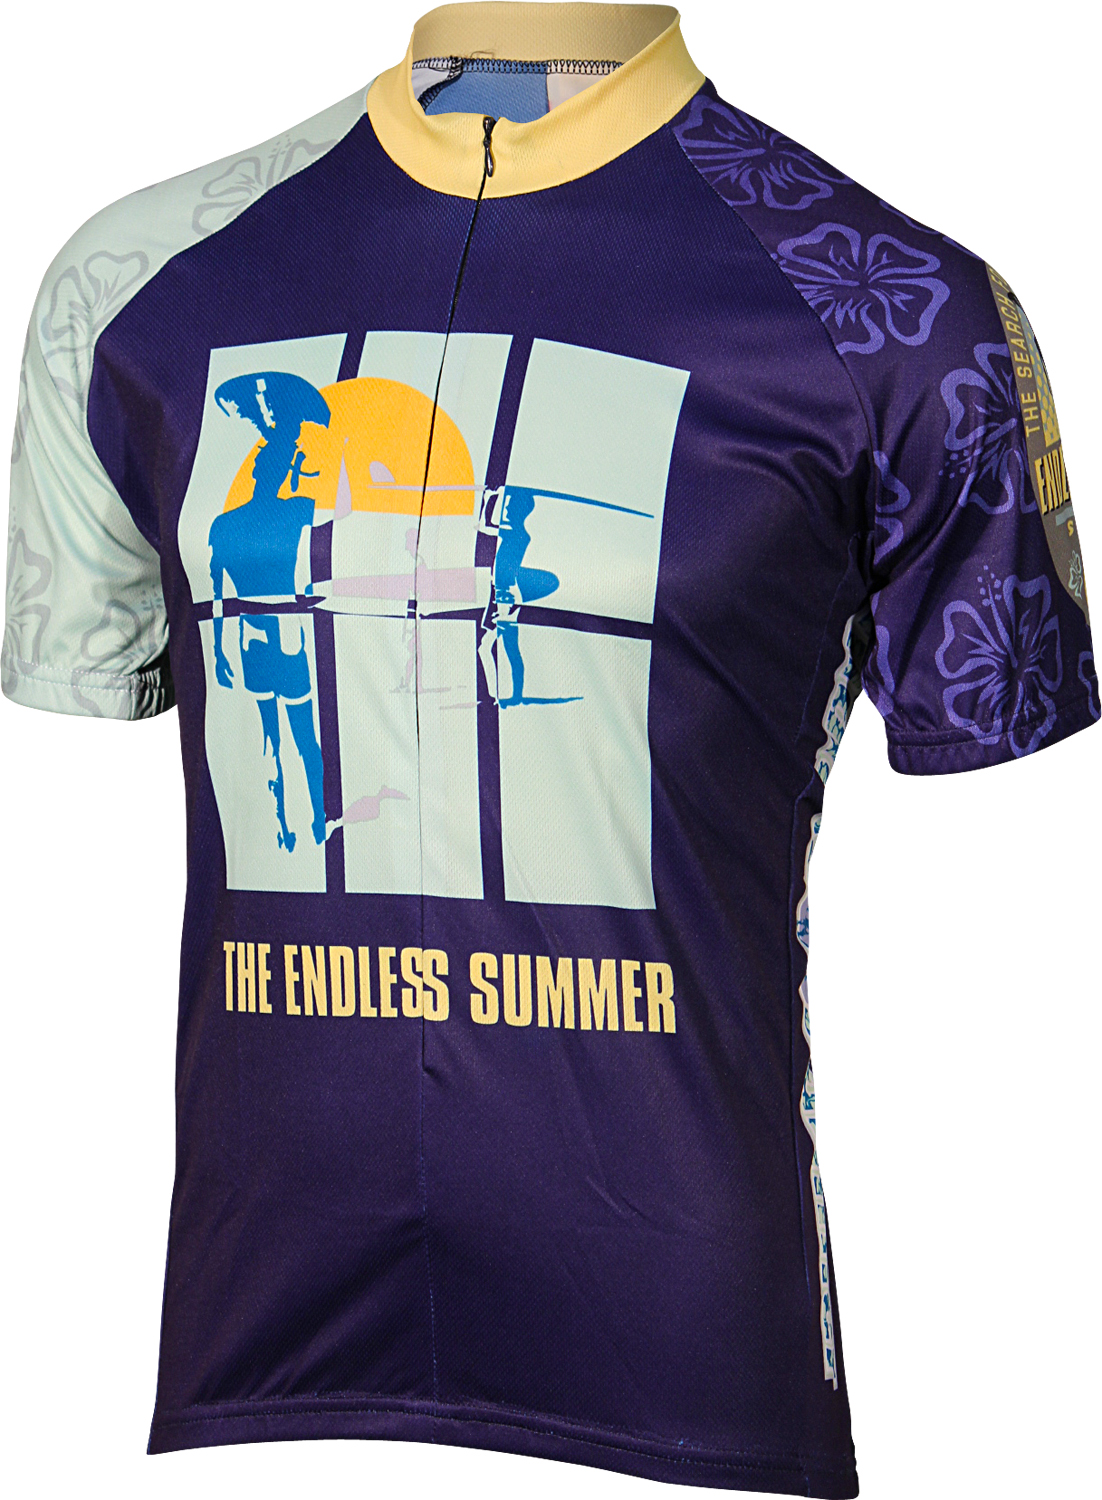 The Blue Endless Summer Cycling Jersey